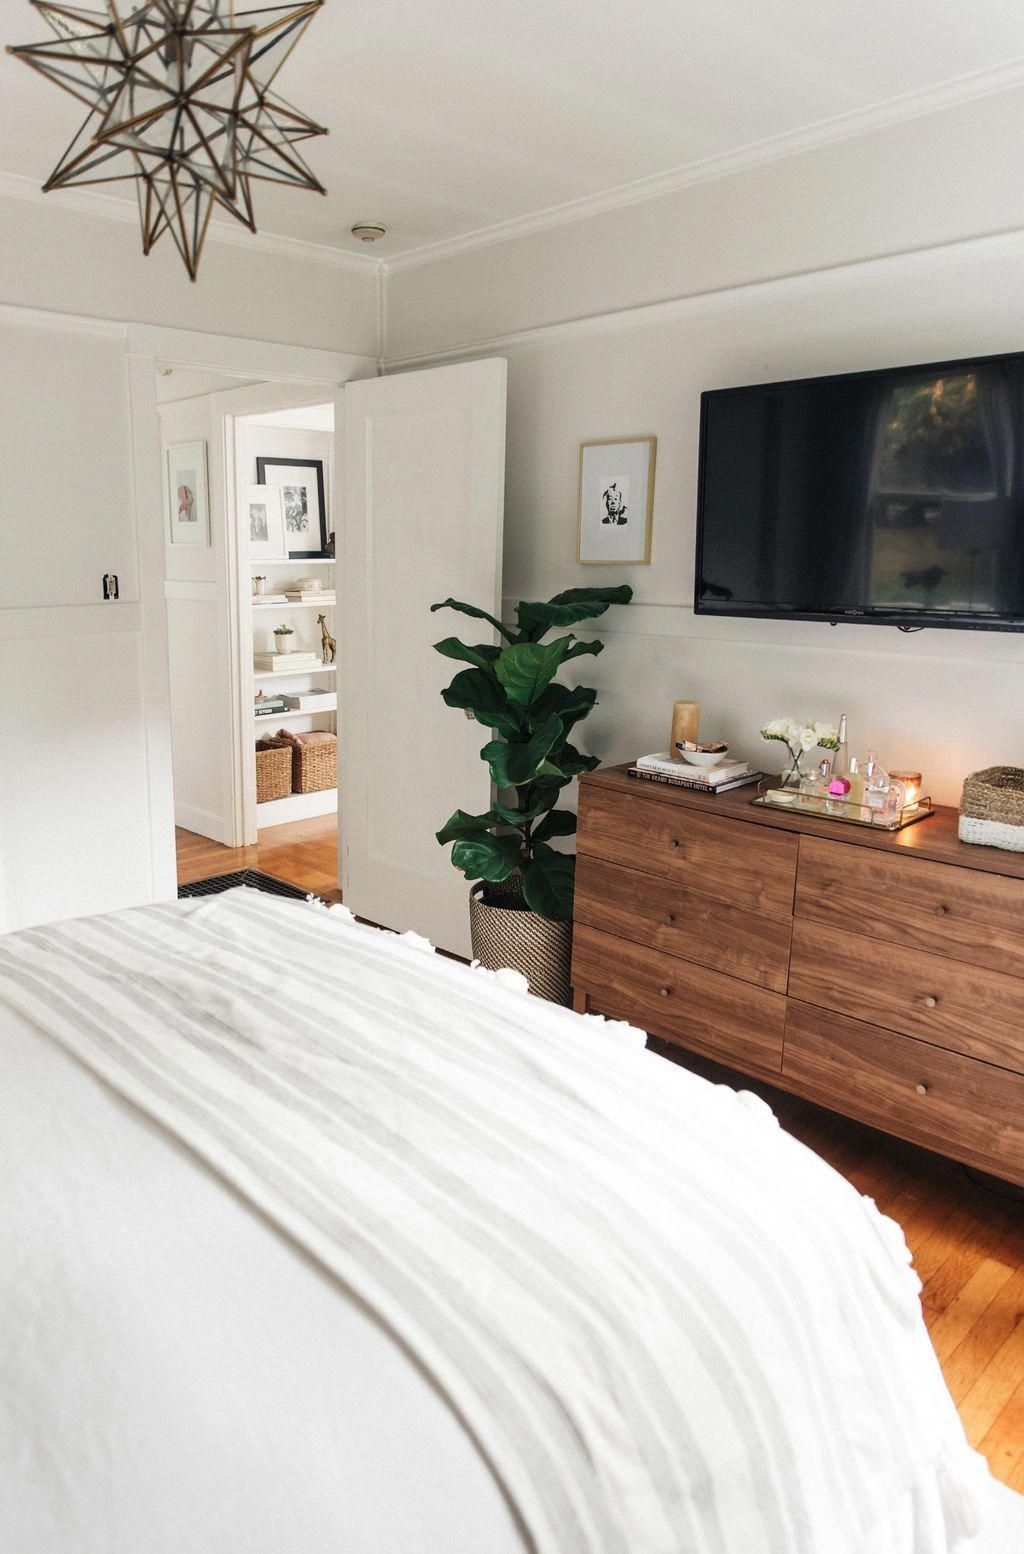 Tv On Wall In Small Bedroom : small, bedroom, Anyone?, Ideas, Bedroom, Design,, Home,, Mount, Screen